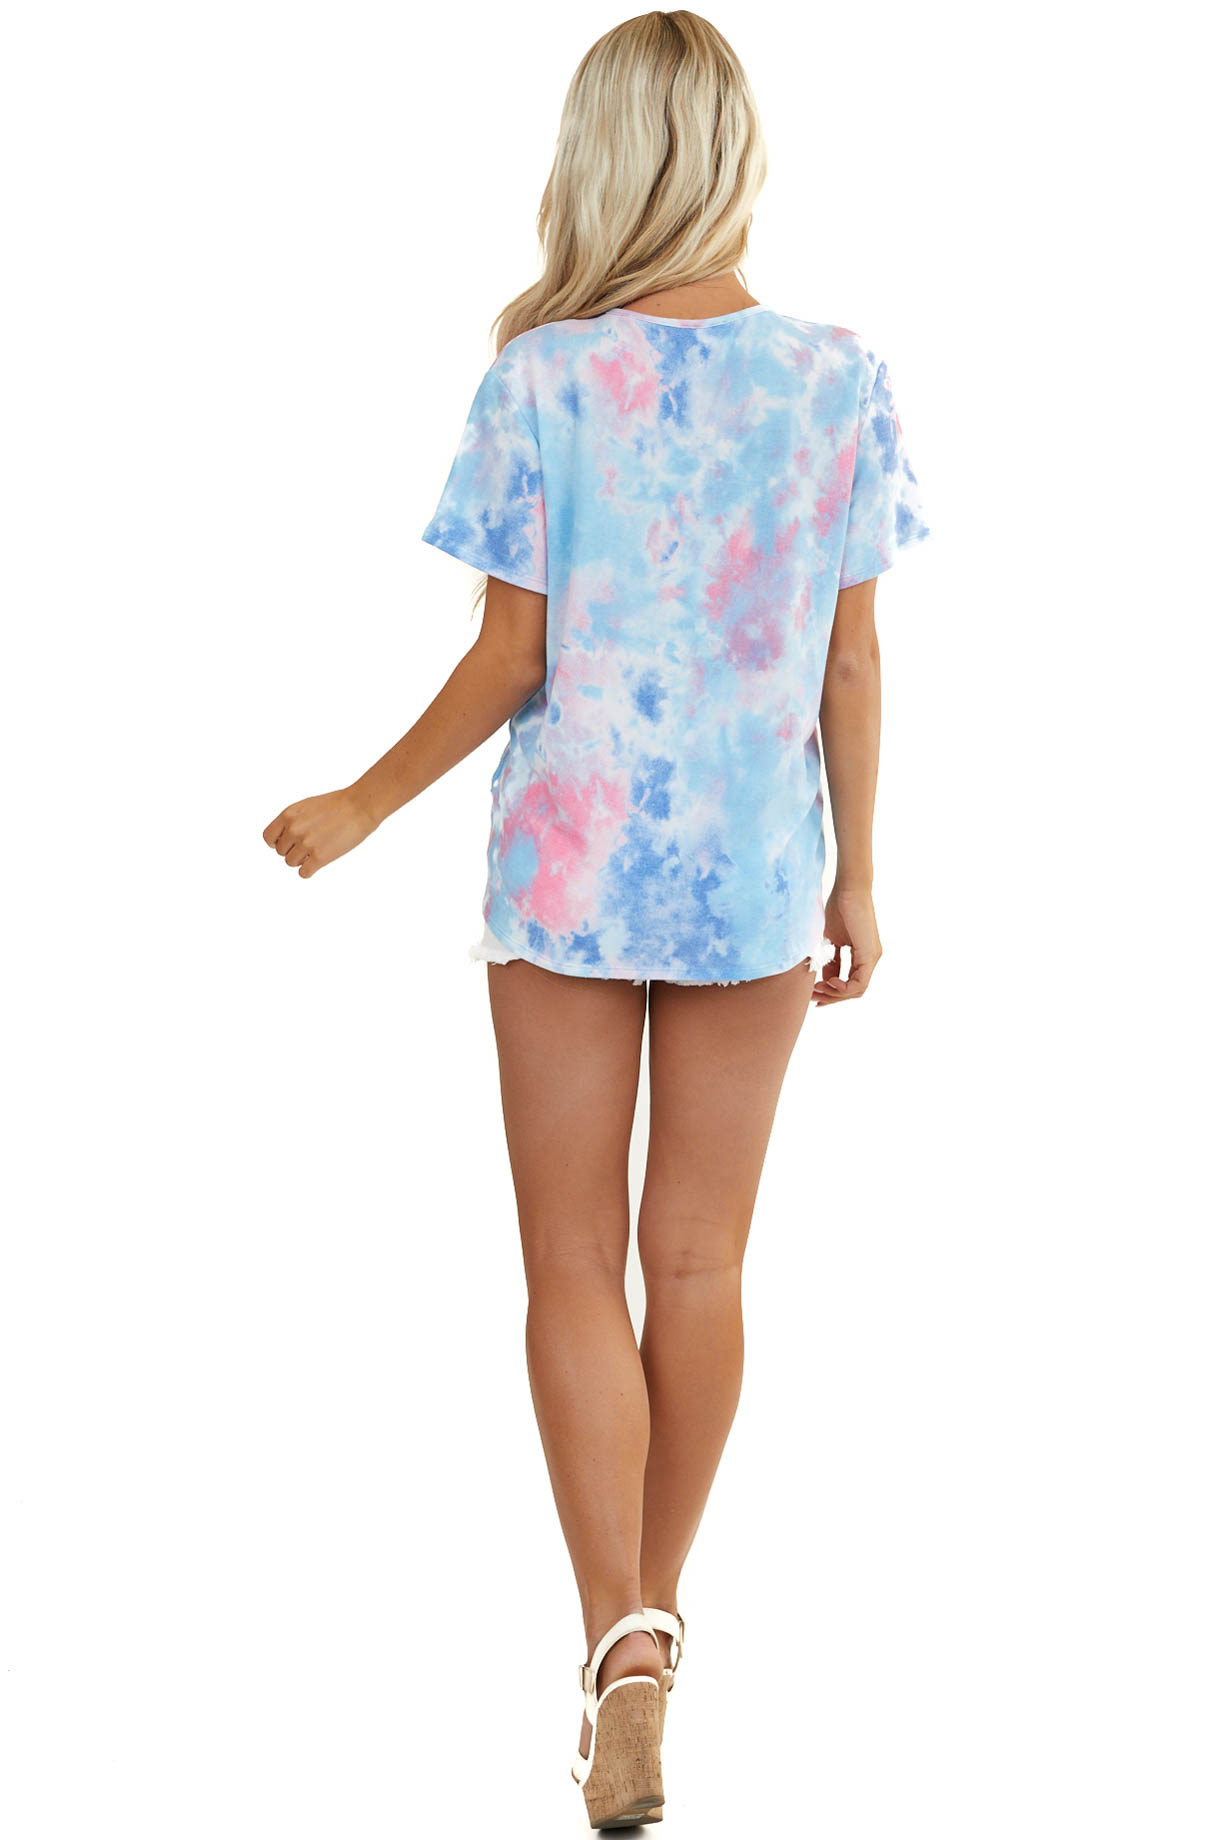 Sky Blue Tie Dye Top with Neckline Cutout and Twist Detail